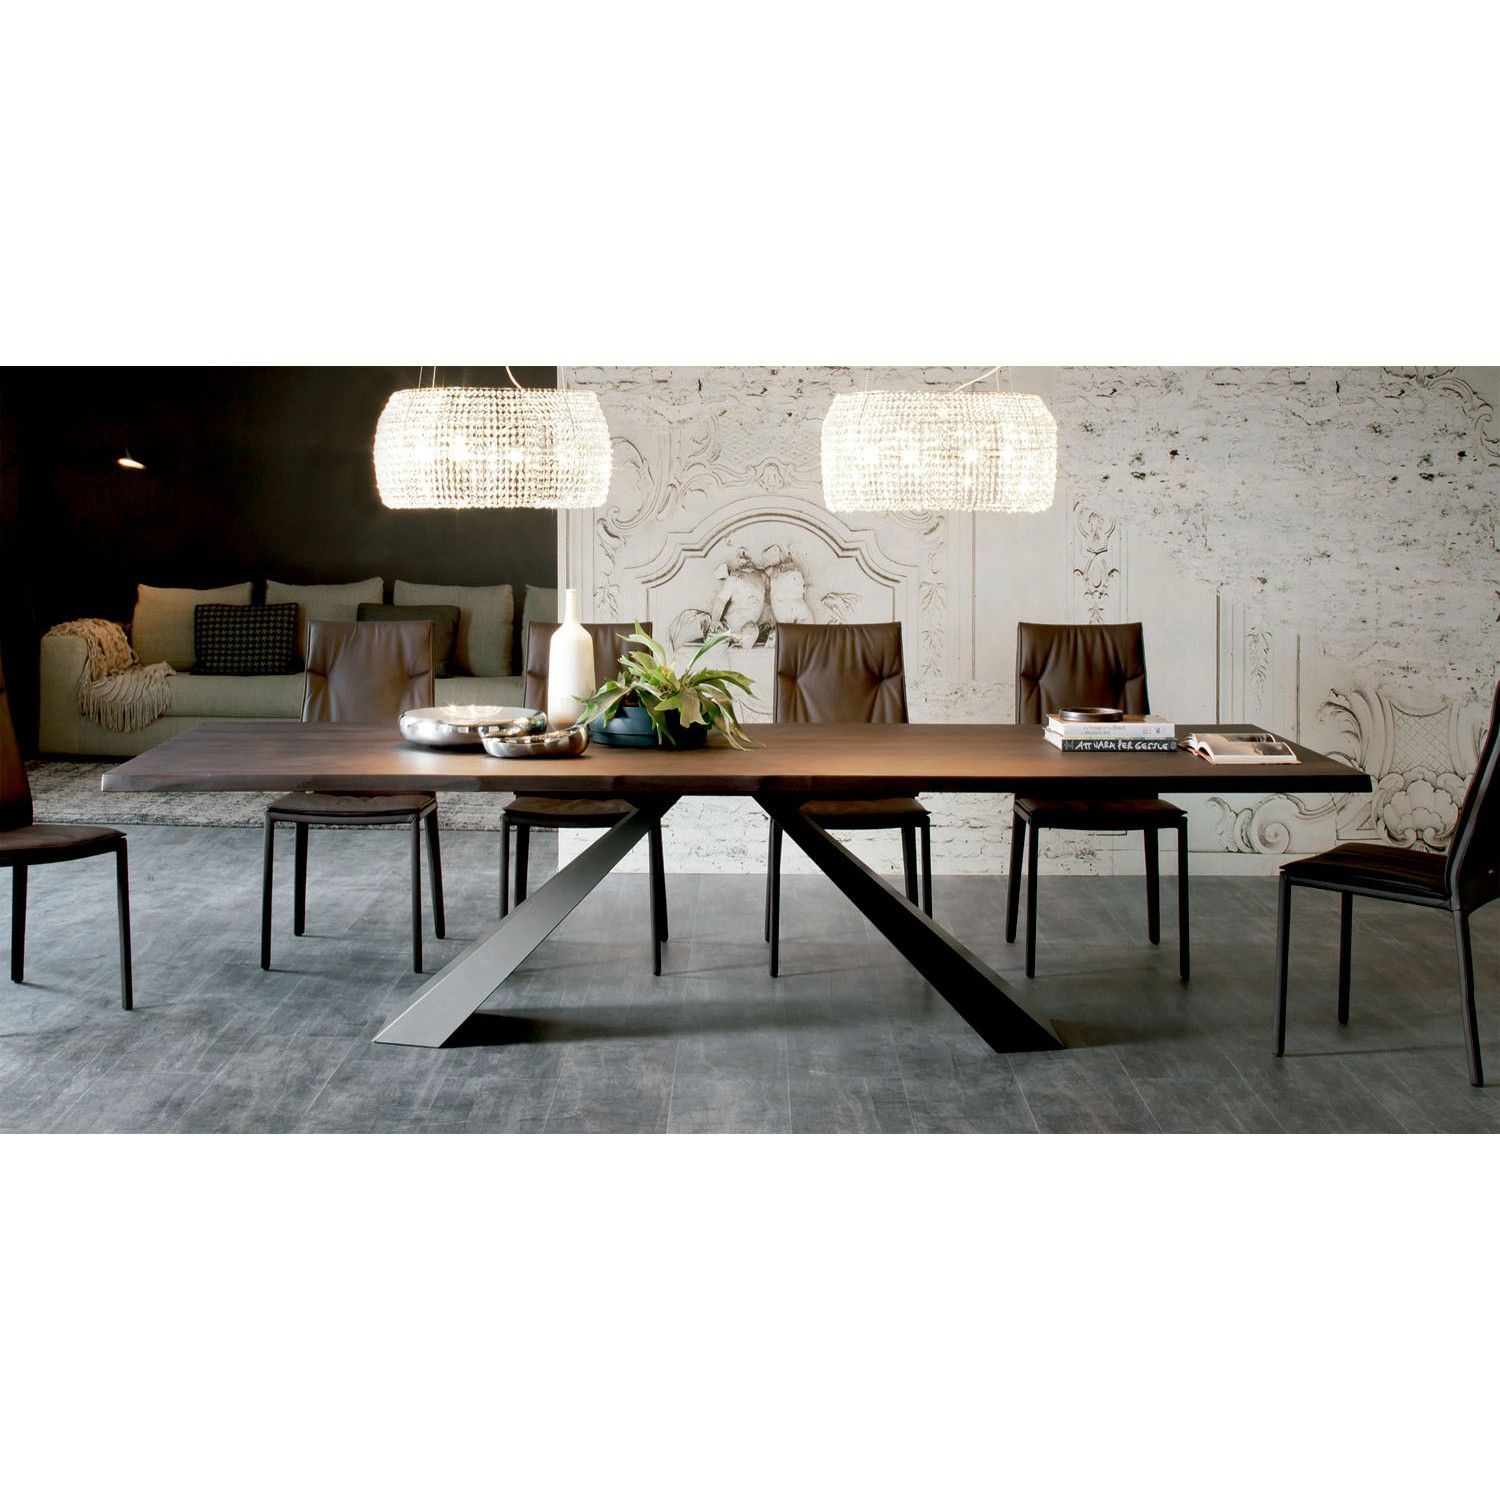 Cattelan italia mesa de comedor eliot wood eliot wood for Mesa de comedor elegante lamentable